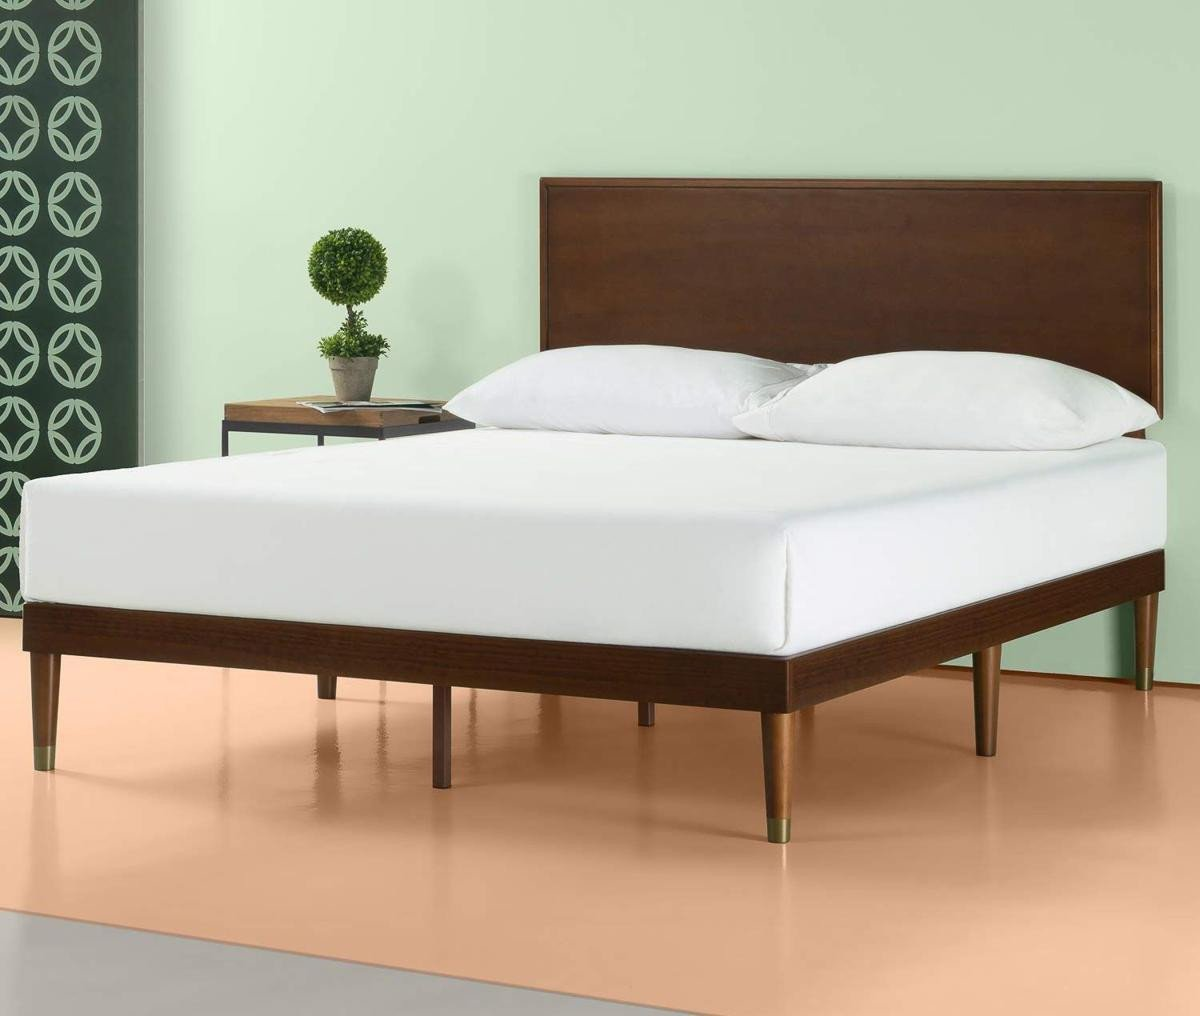 High Quality Bedroom Furniture Unique Get A West Elm Look for Under $300 with This Mid Century Bed